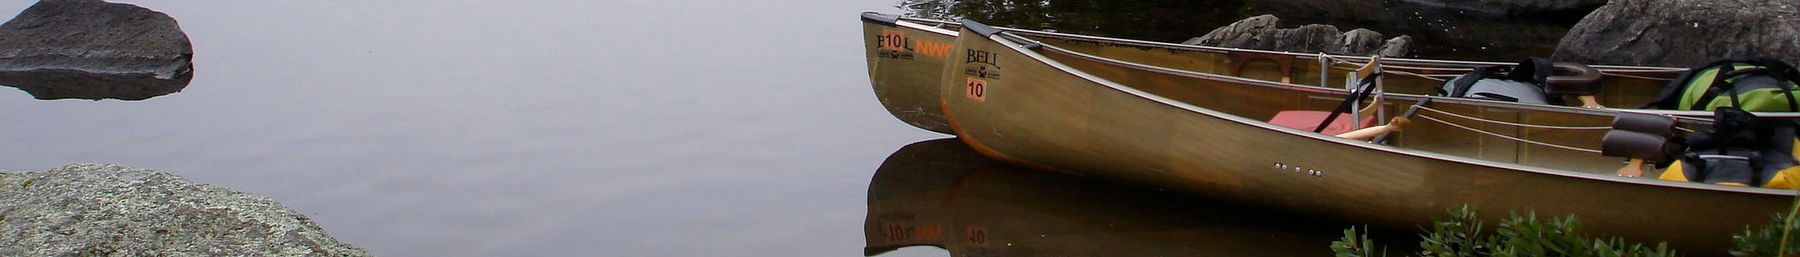 Boundary Waters canoe banner.jpg